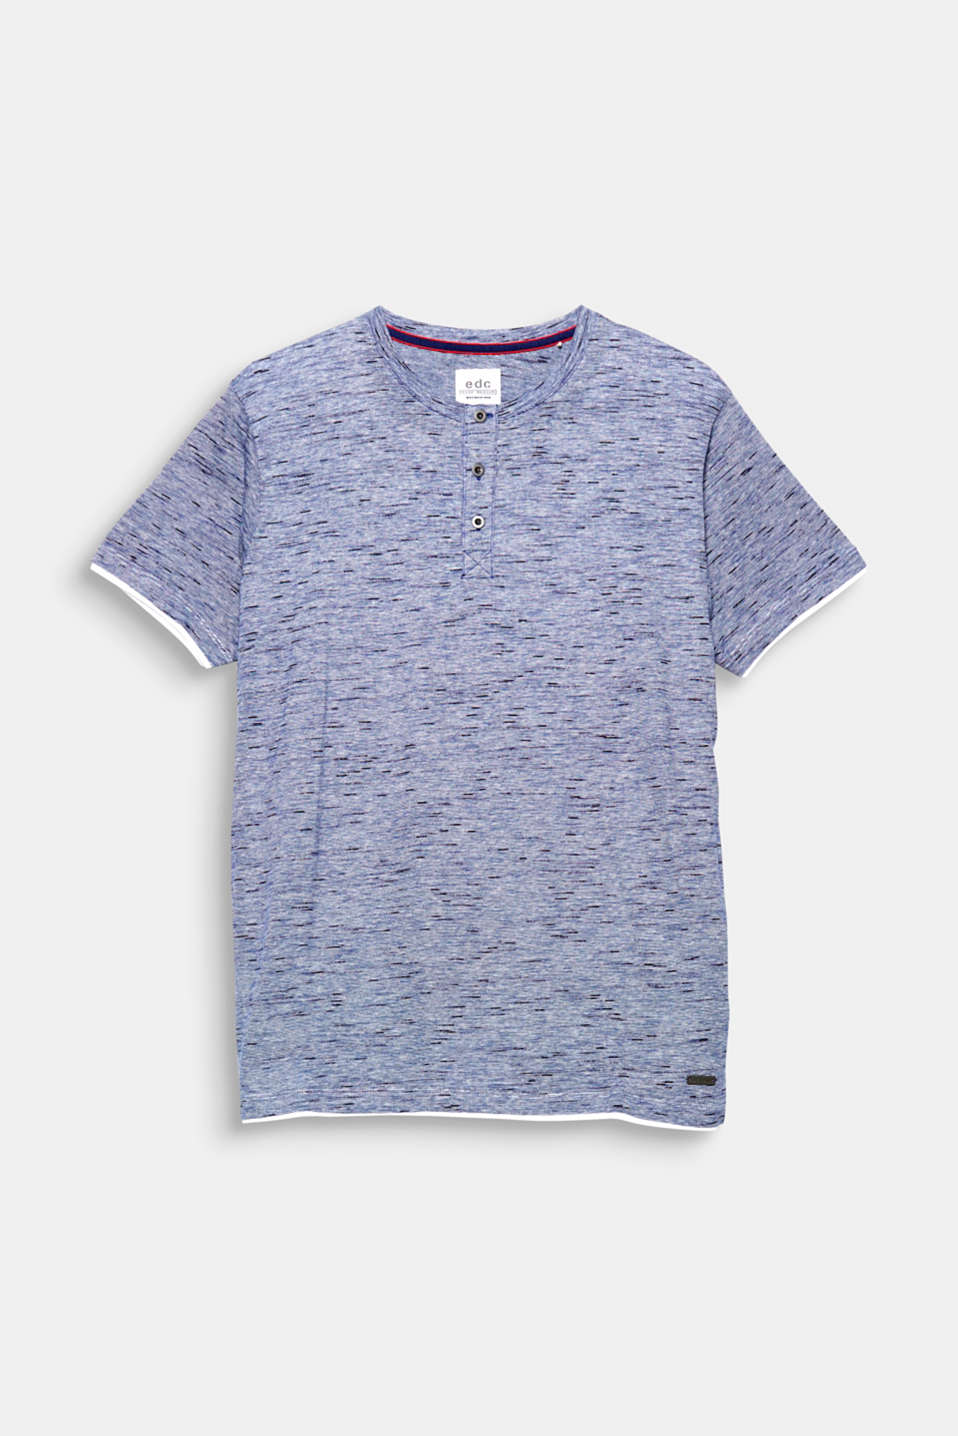 A casual fashion piece: T-shirt with a Henley neckline, made of slub jersey